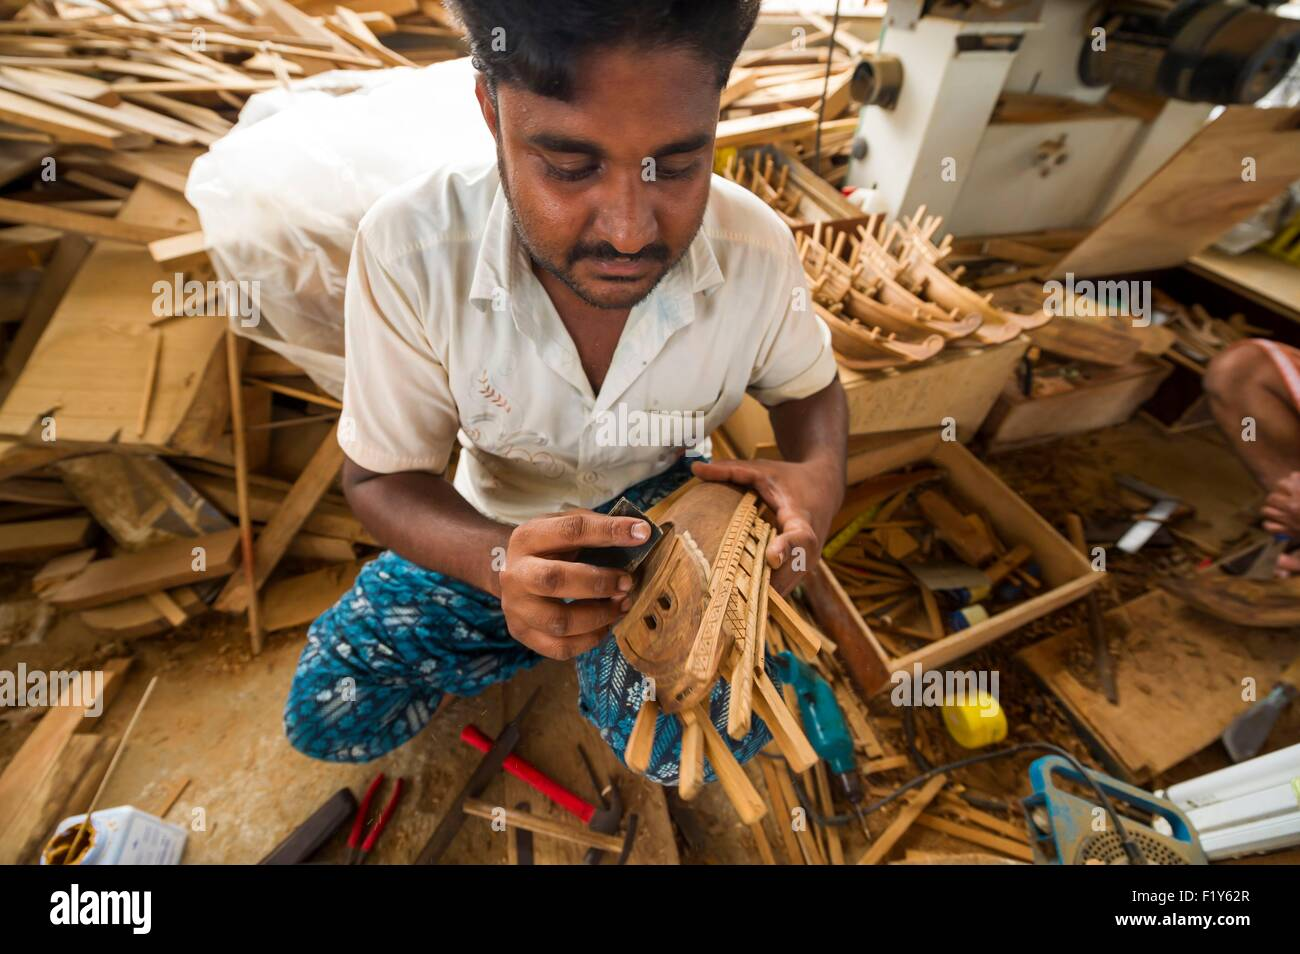 Oman, Sur, marine museum, naval factory of dhow, indian workers manufacturing scale models for tourists - Stock Image